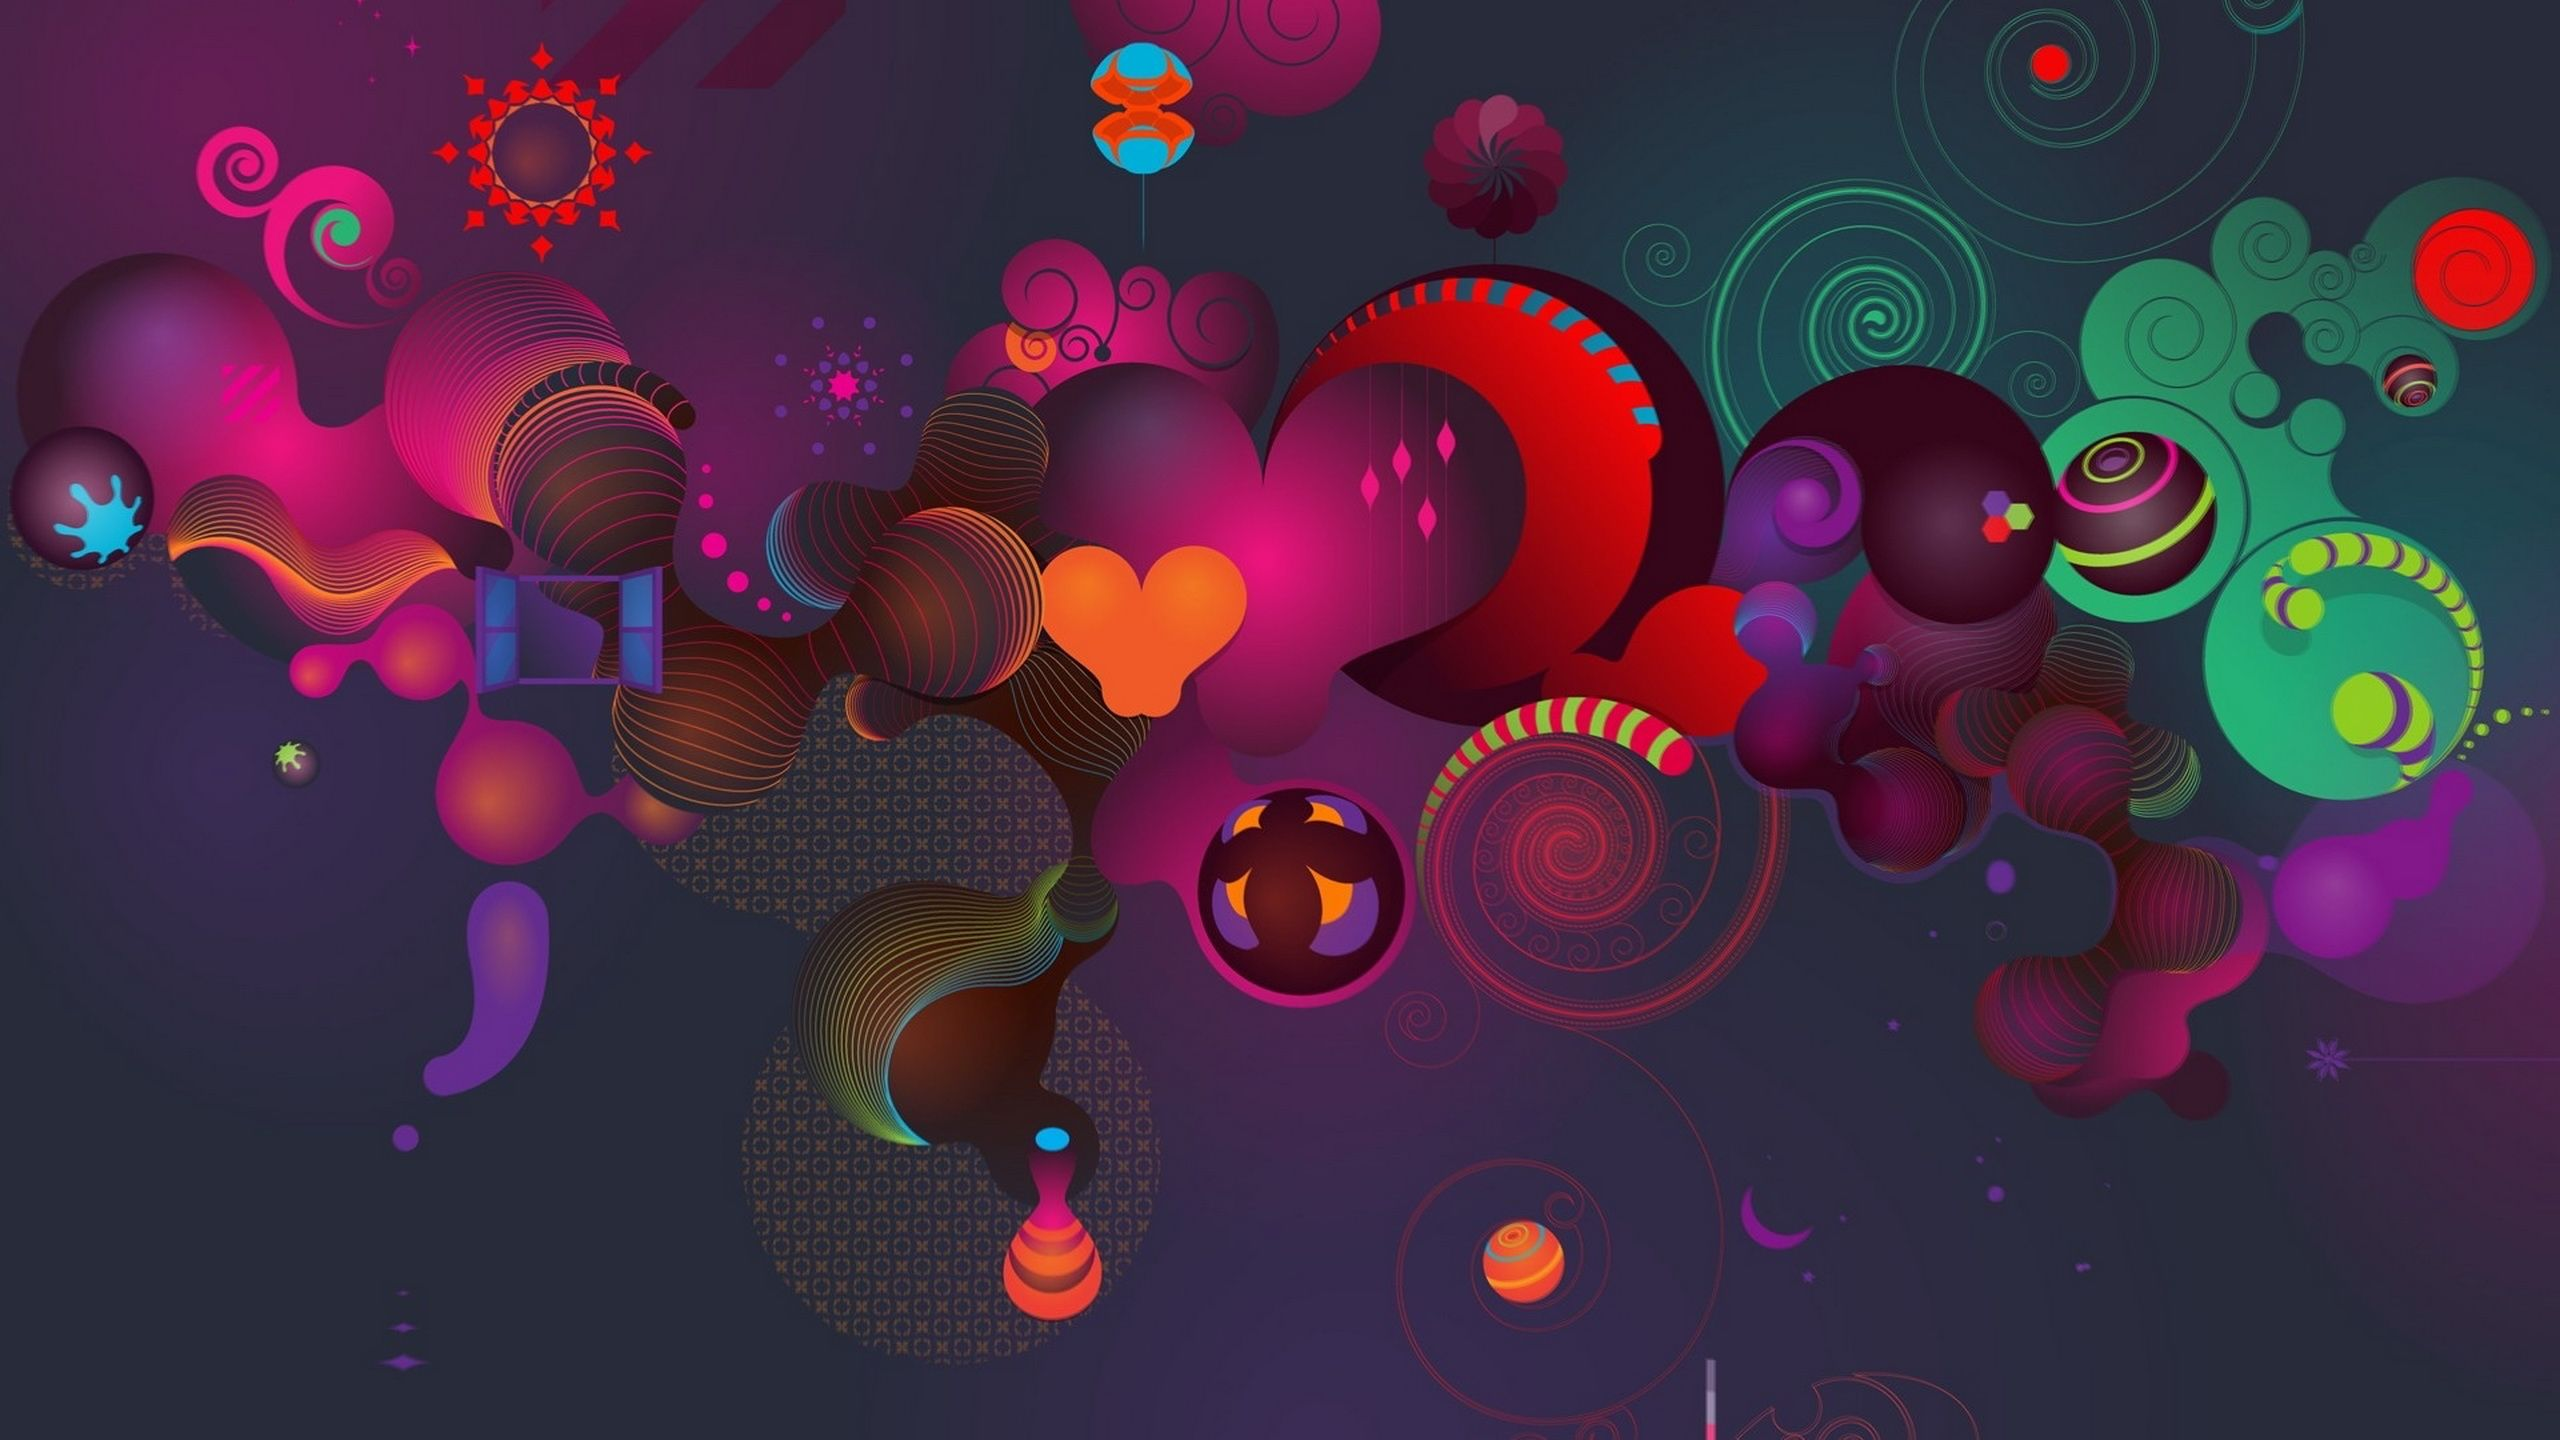 Colorful Love Abstract Backgrounds For Desktop 29191 Wallpaper